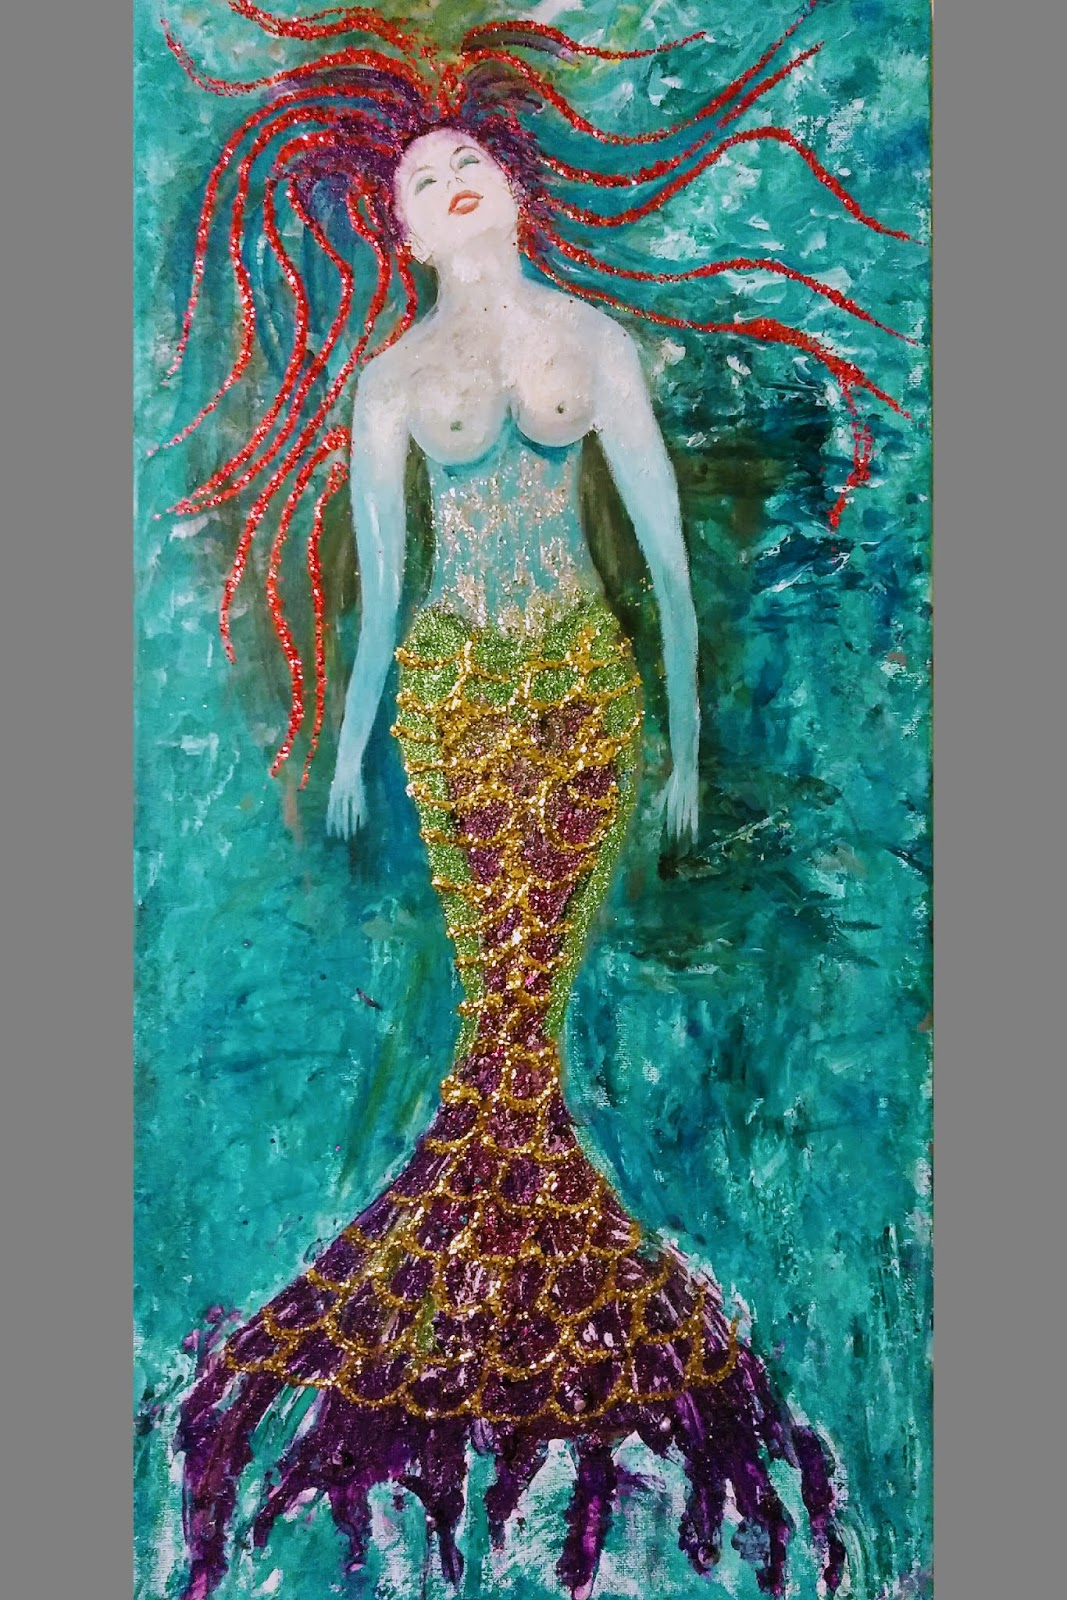 Colorful painting of a beautiful mermaid in the sea: young woman with red hair